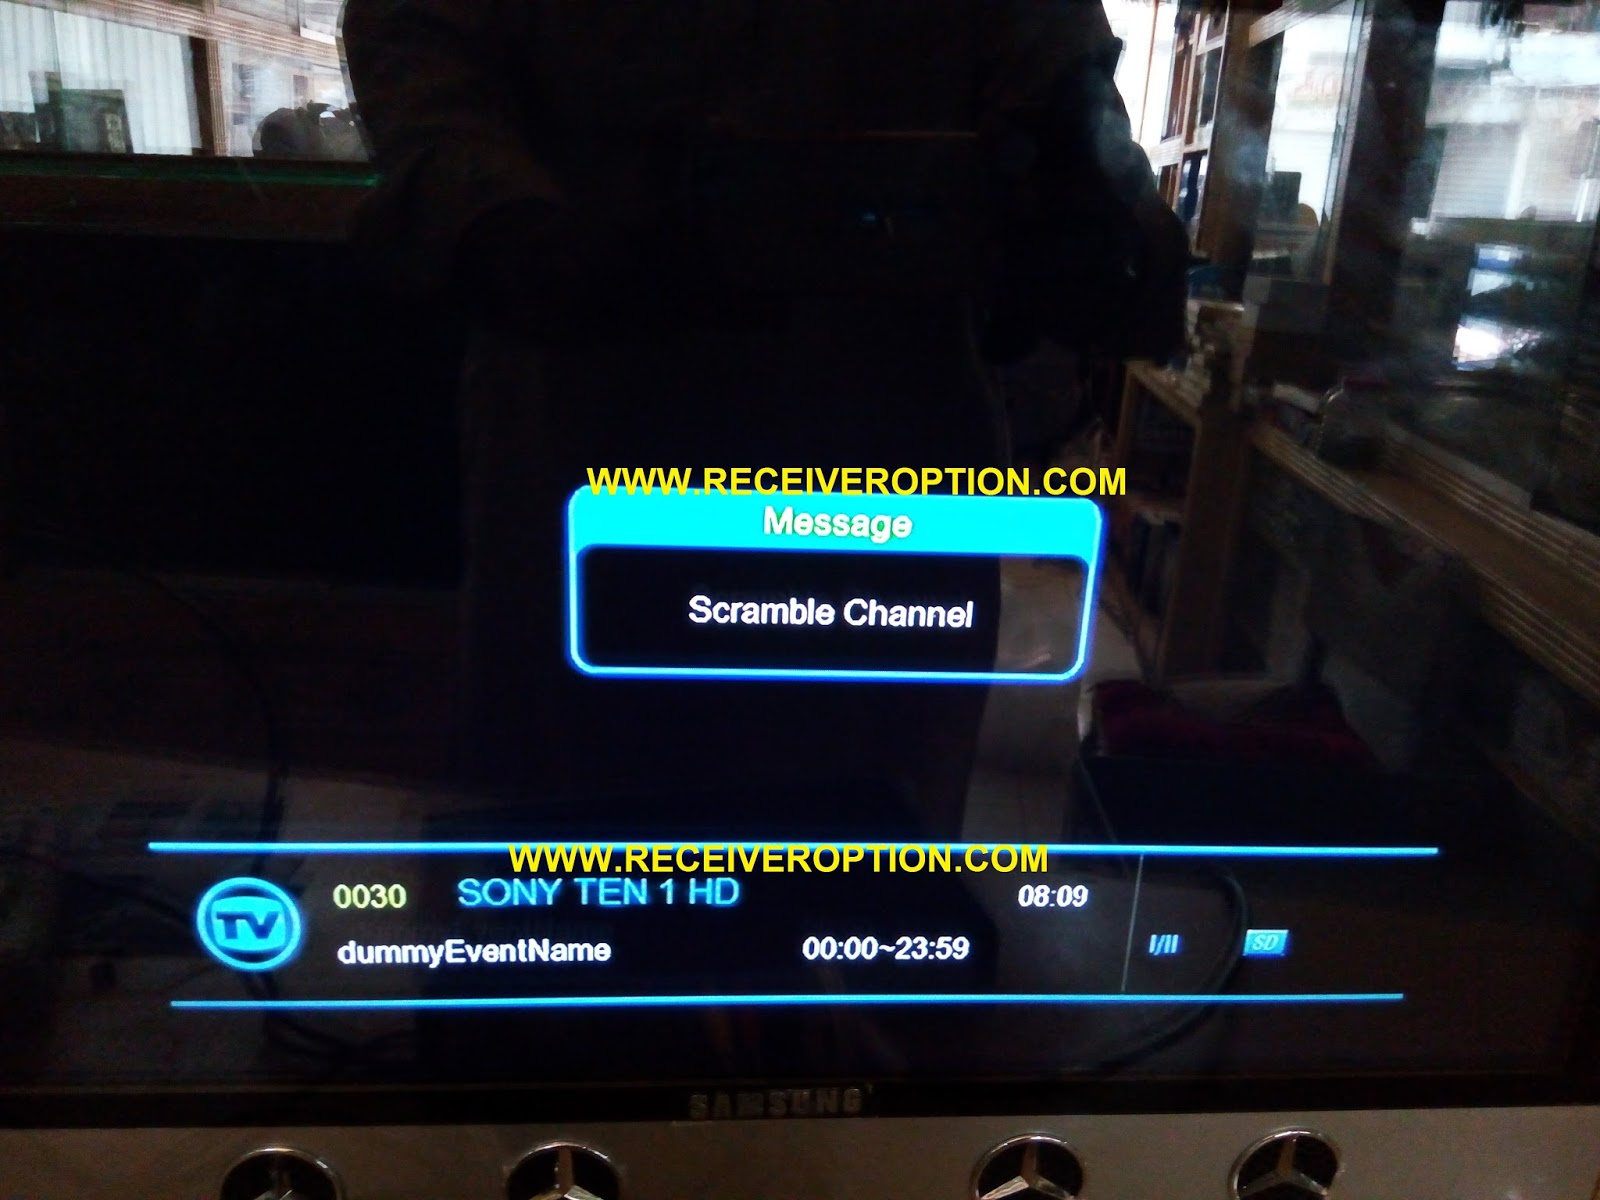 ECHOLINK 9090 HD RECEIVER POWERVU KEY OPTION - HOW TO ENTER BISS KEY